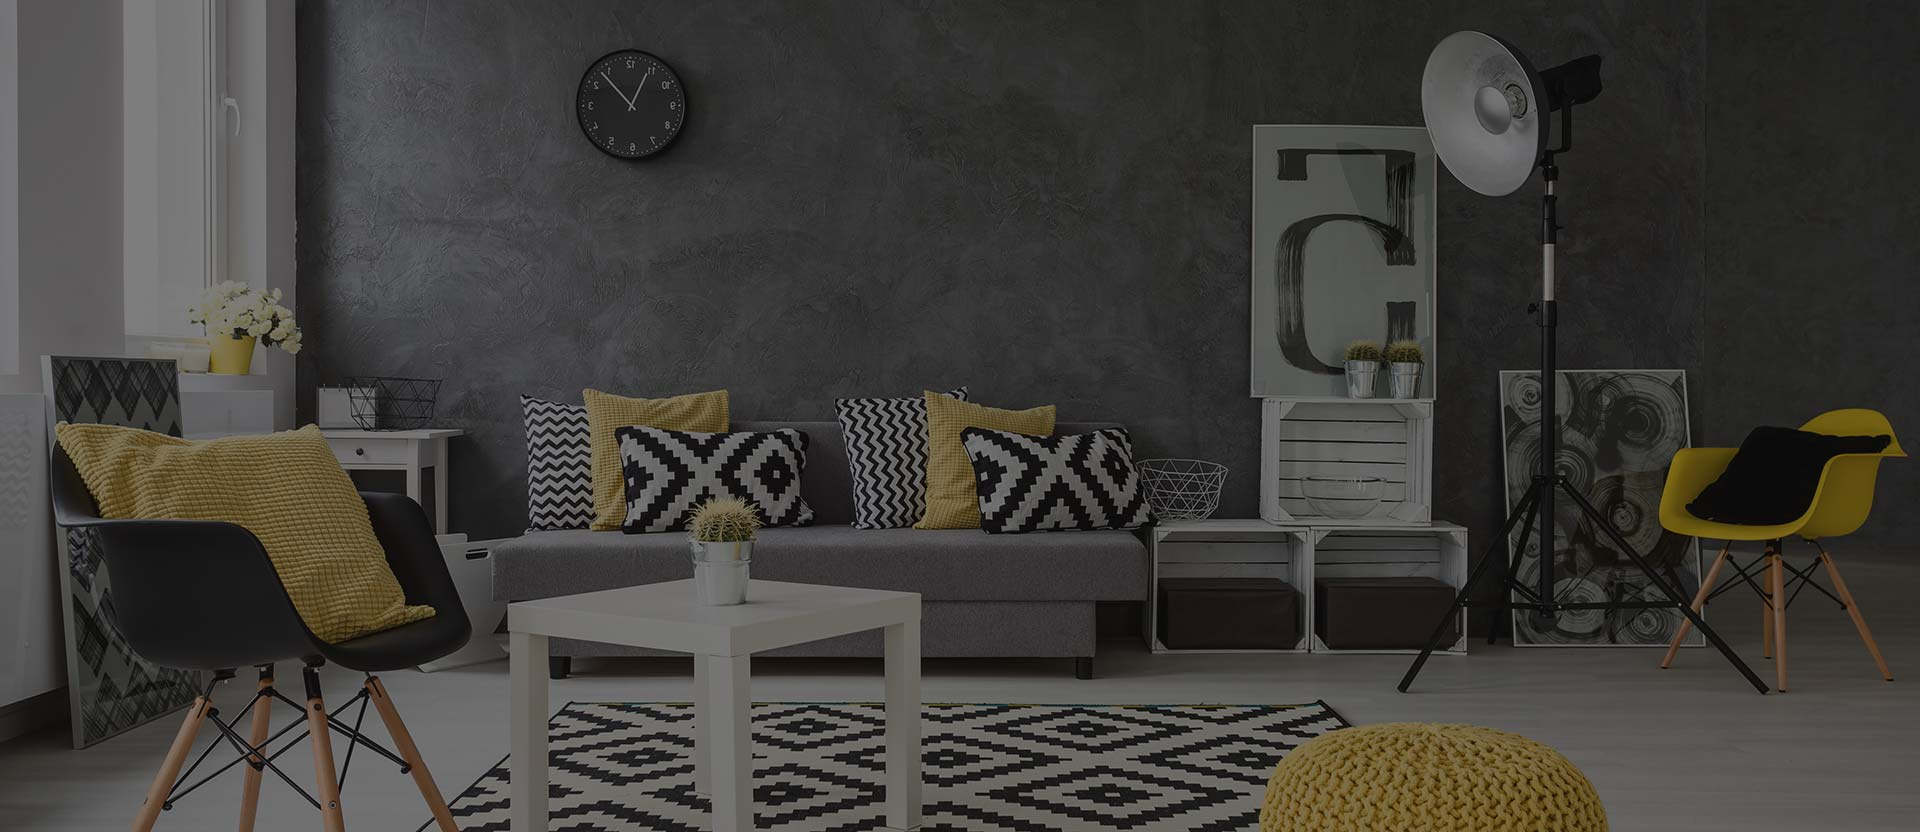 Home Page1 - Cosy Home Interiors